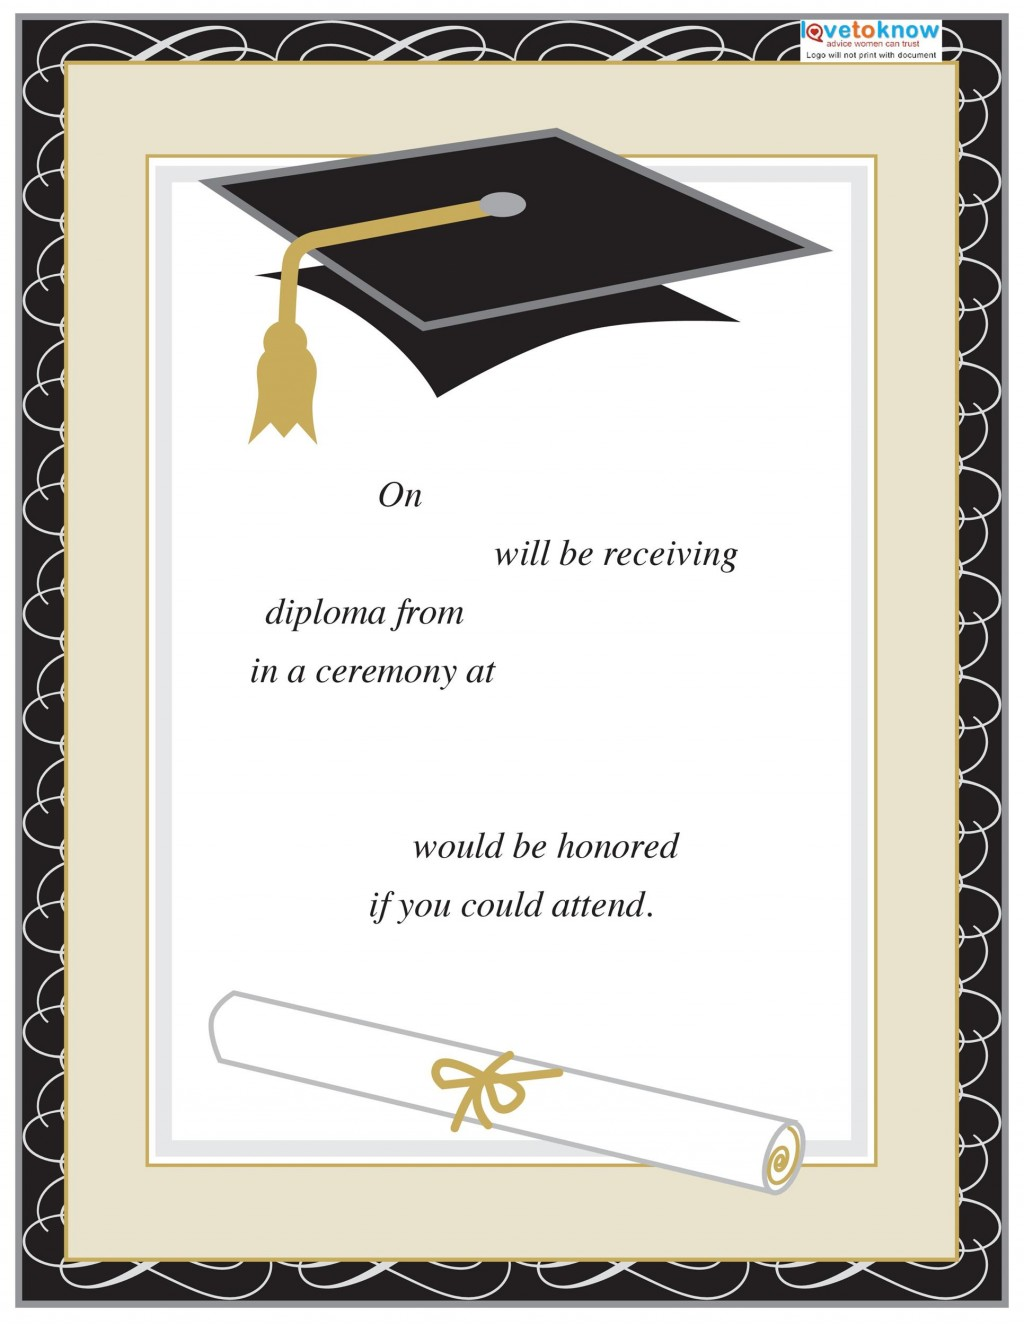 008 Excellent College Graduation Invitation Template Highest Quality  Party Free For WordLarge